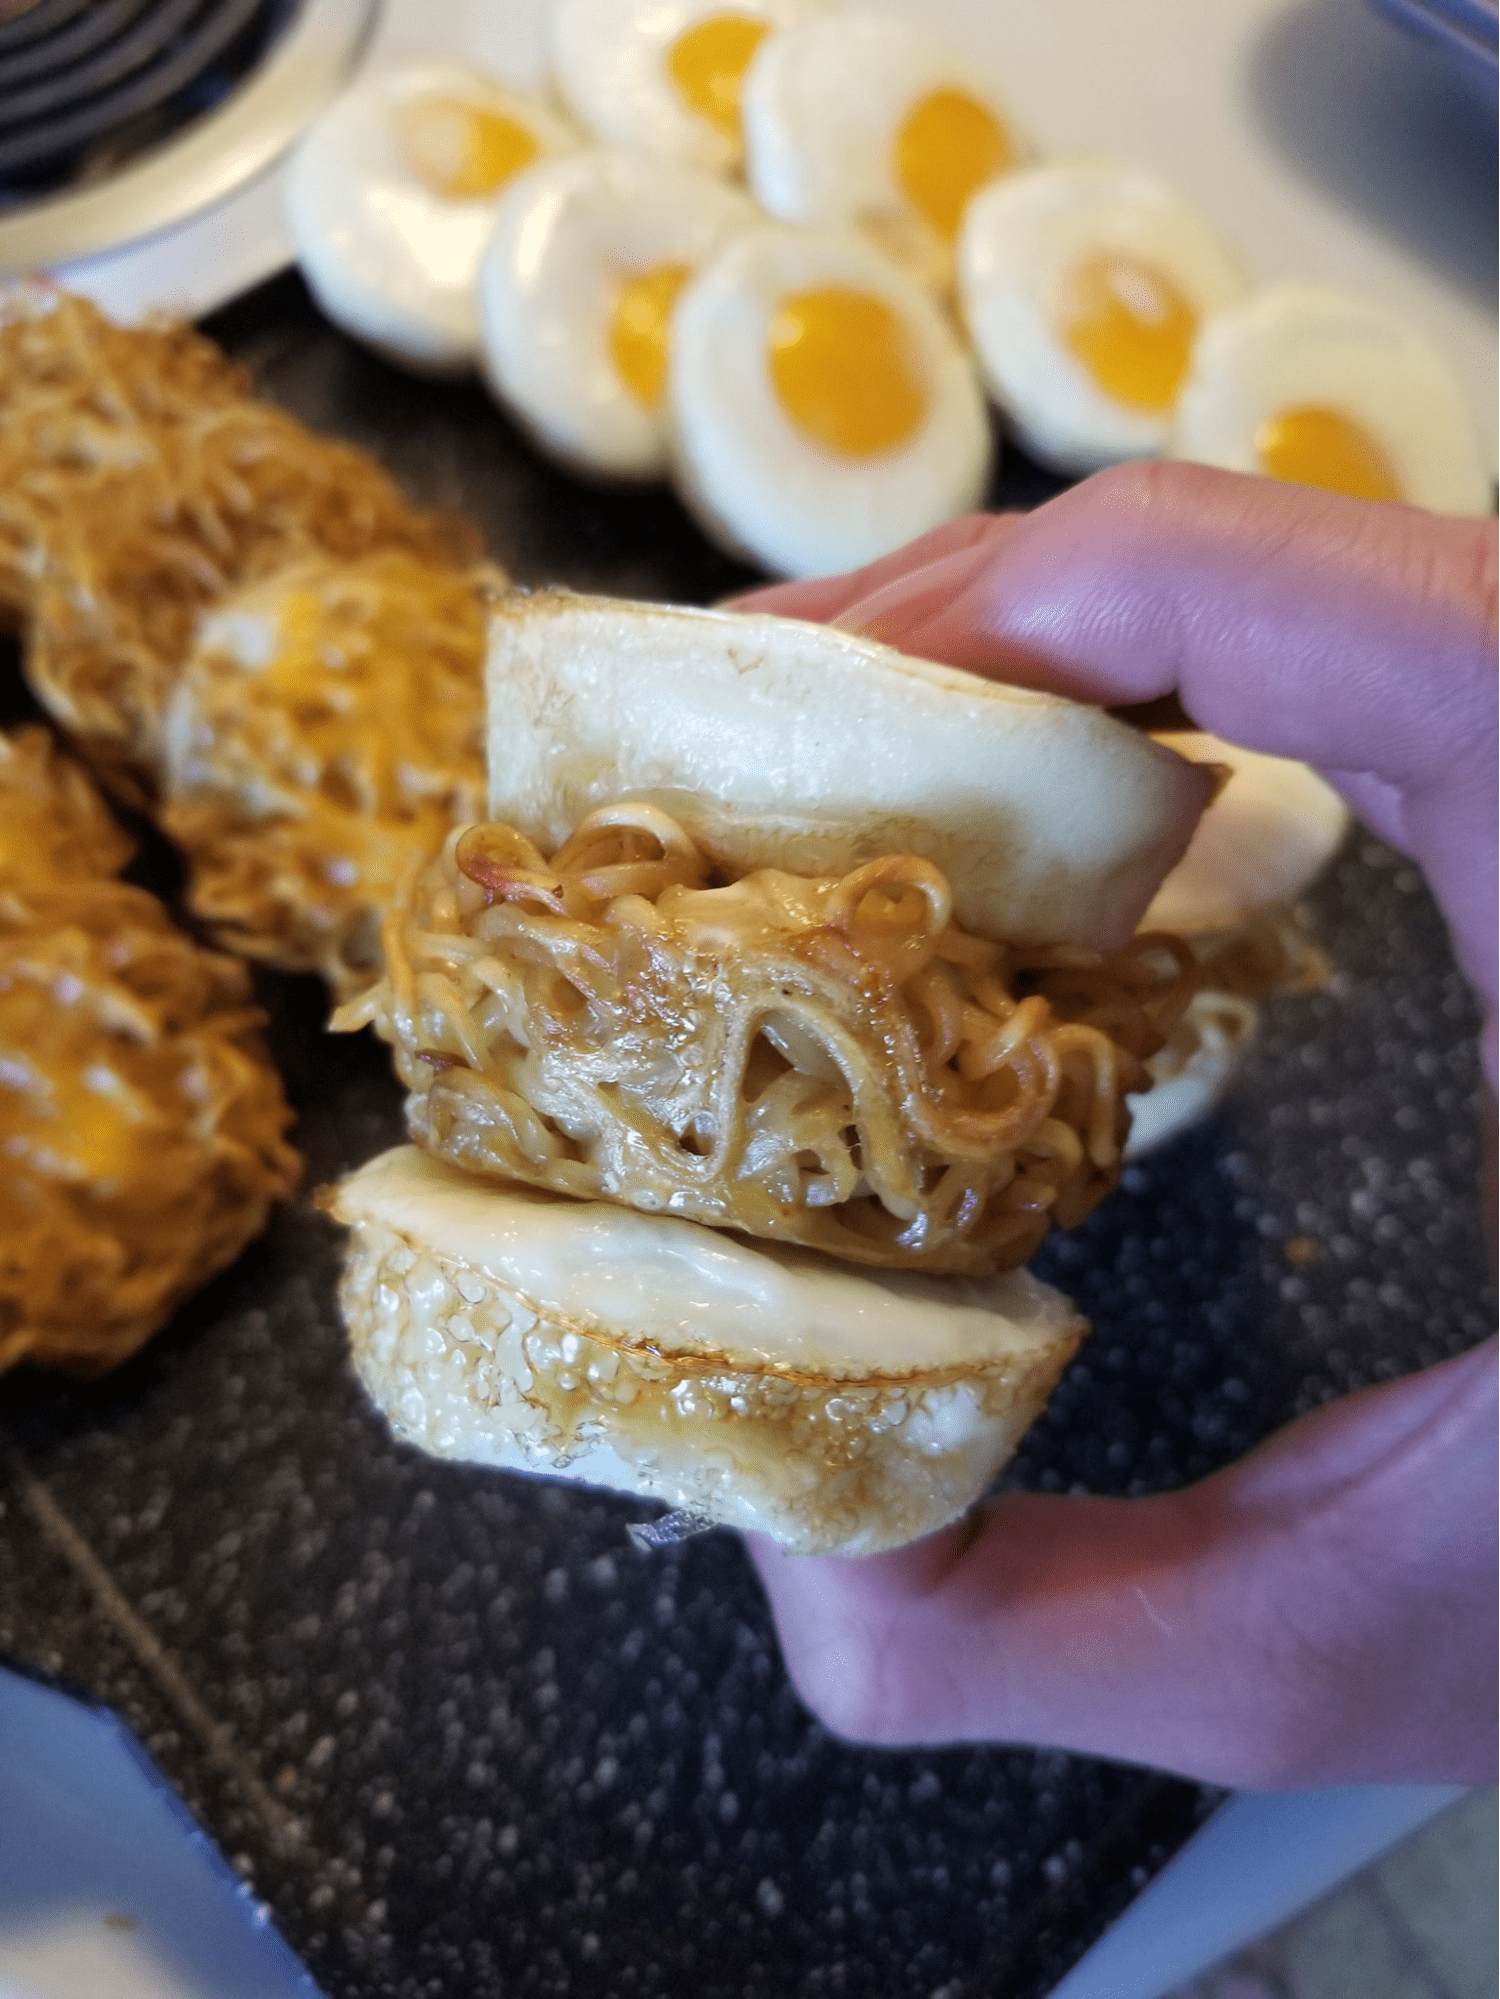 baked noodle cup sandwiched in two eggs